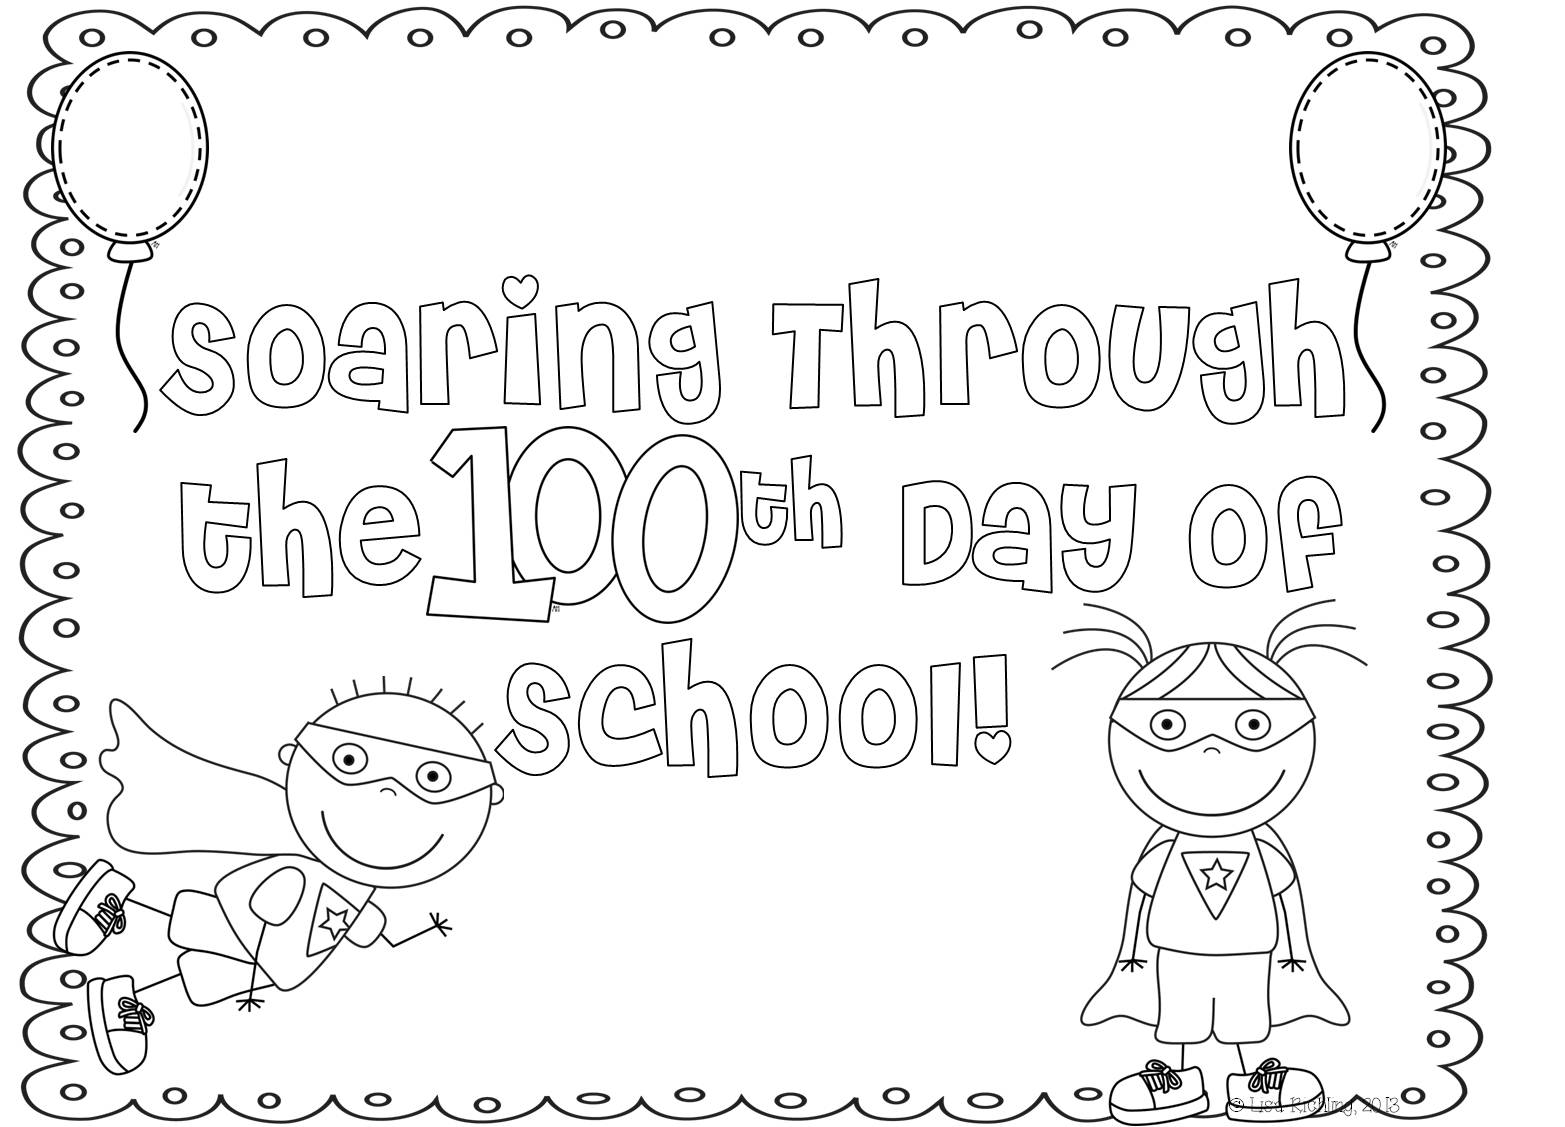 Coloring Pages 100th Day Of School Coloring Page 100th day of school coloring pages eassume com 100 days color 1000 images about day